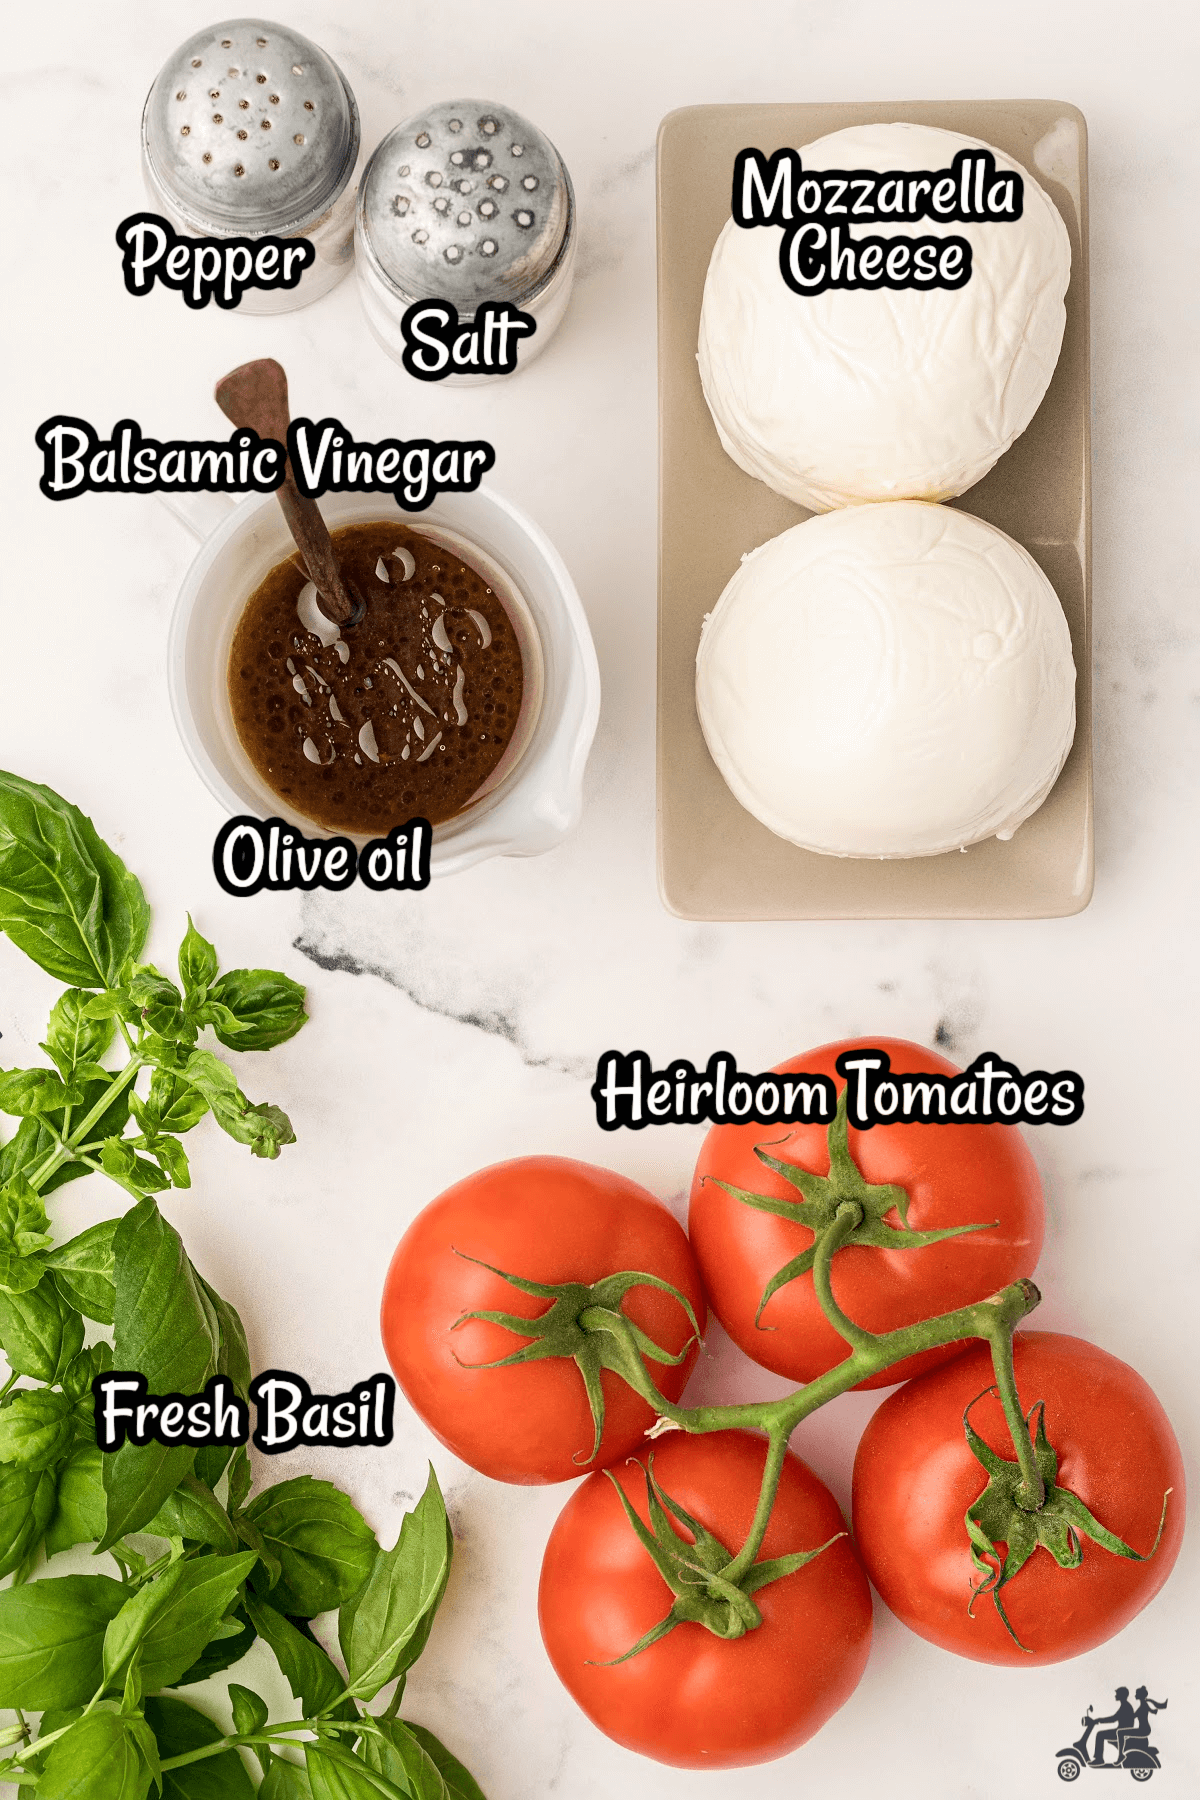 Ingredients listed for the Capri Salad.